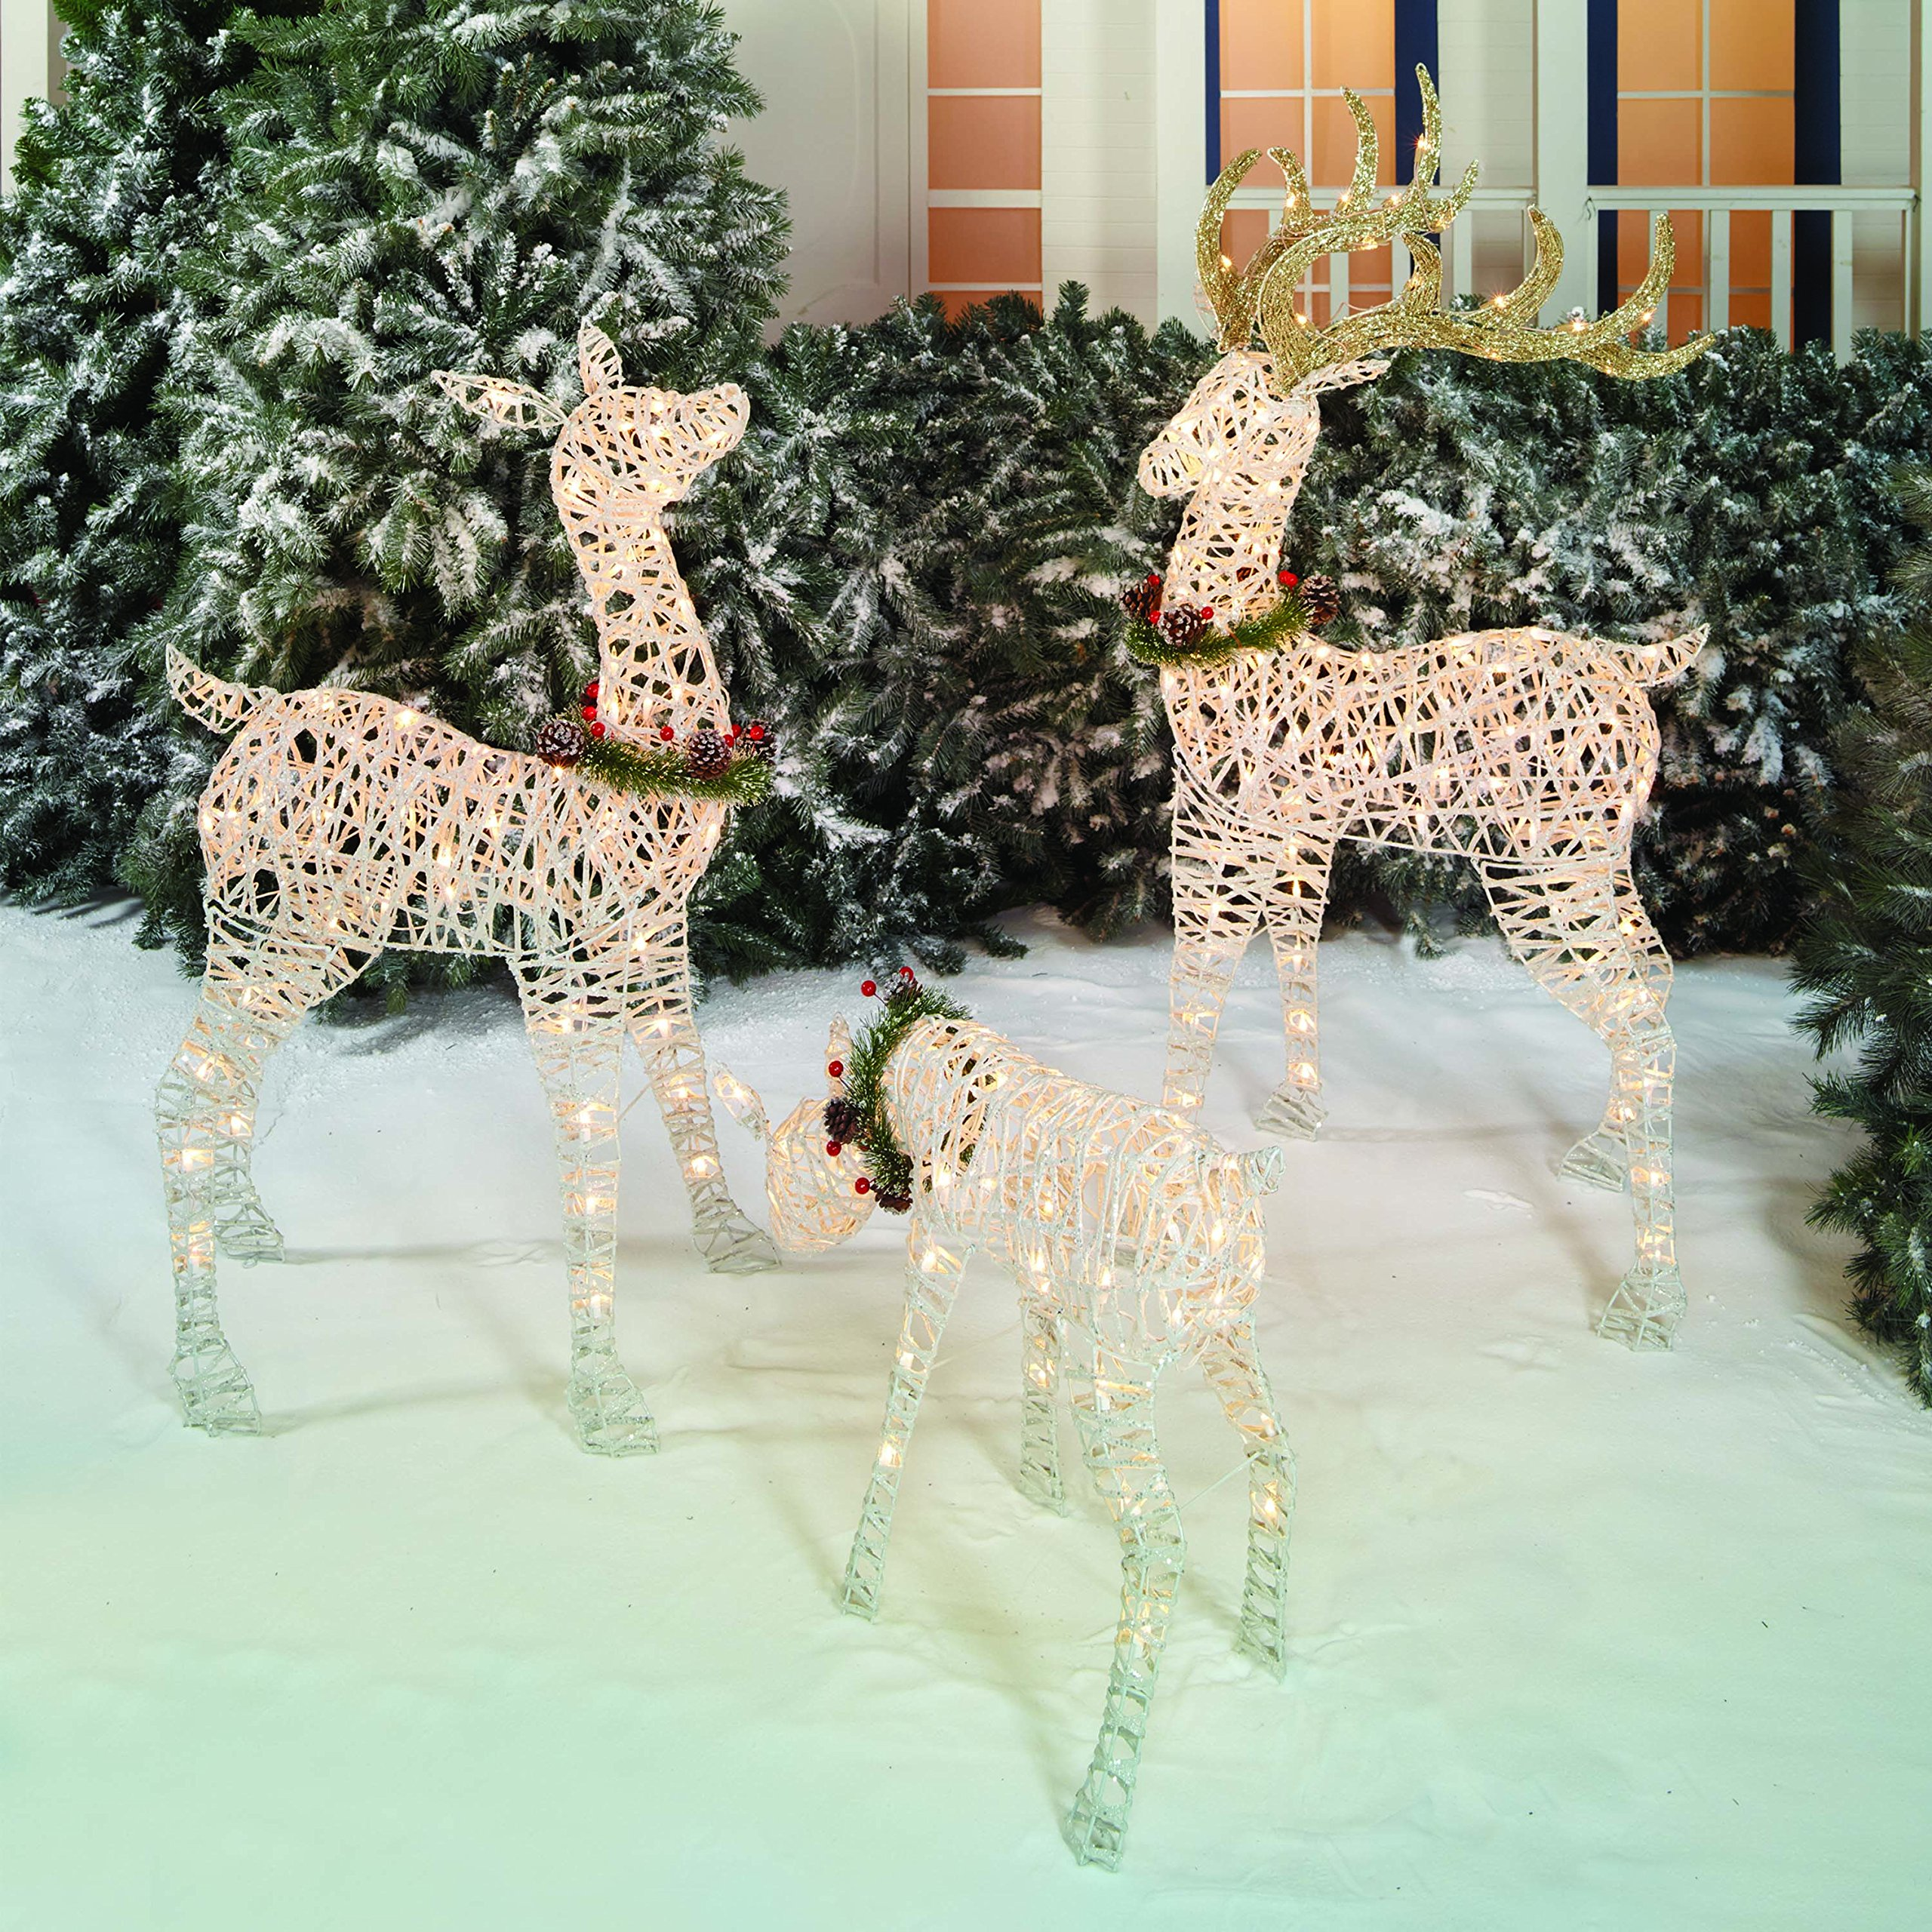 outdoor christmas reindeer family 3 set 220 lights 52 buck 44 doe 28 - Christmas Reindeer Decorations Outdoor